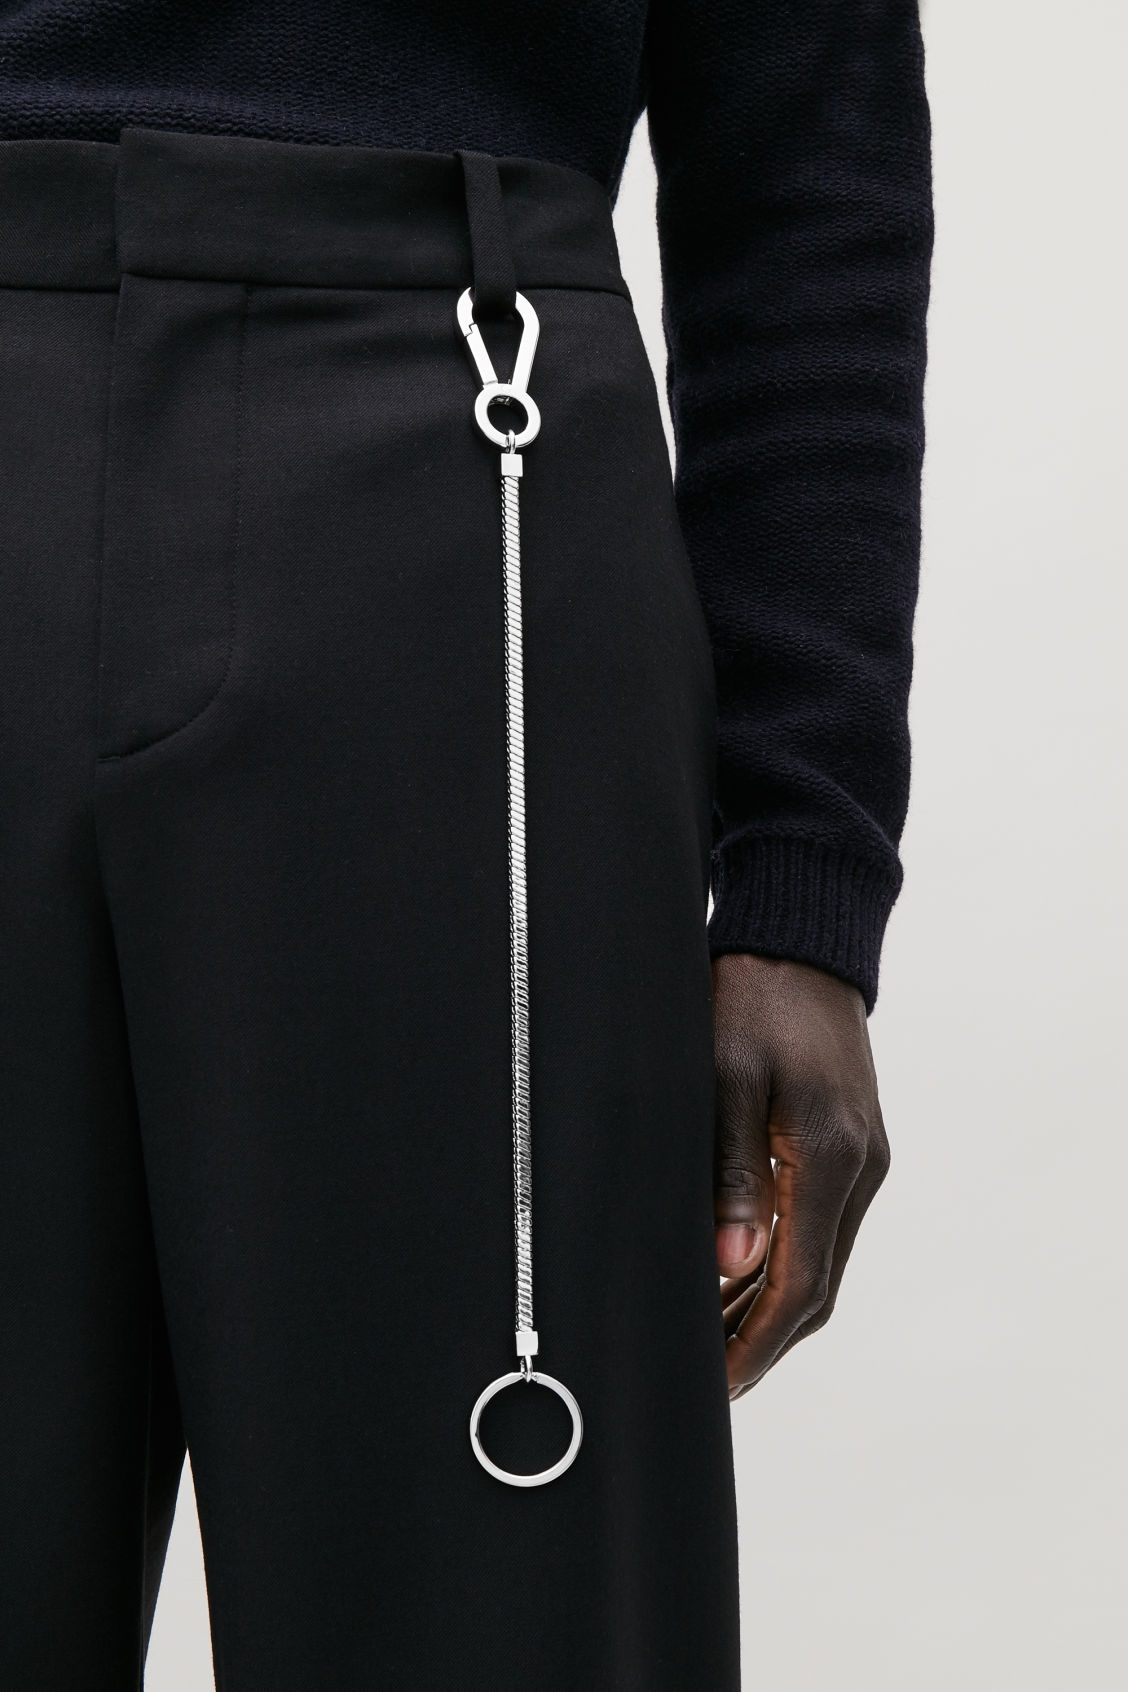 Detailed image of Cos metal keyring chain with hook in silver